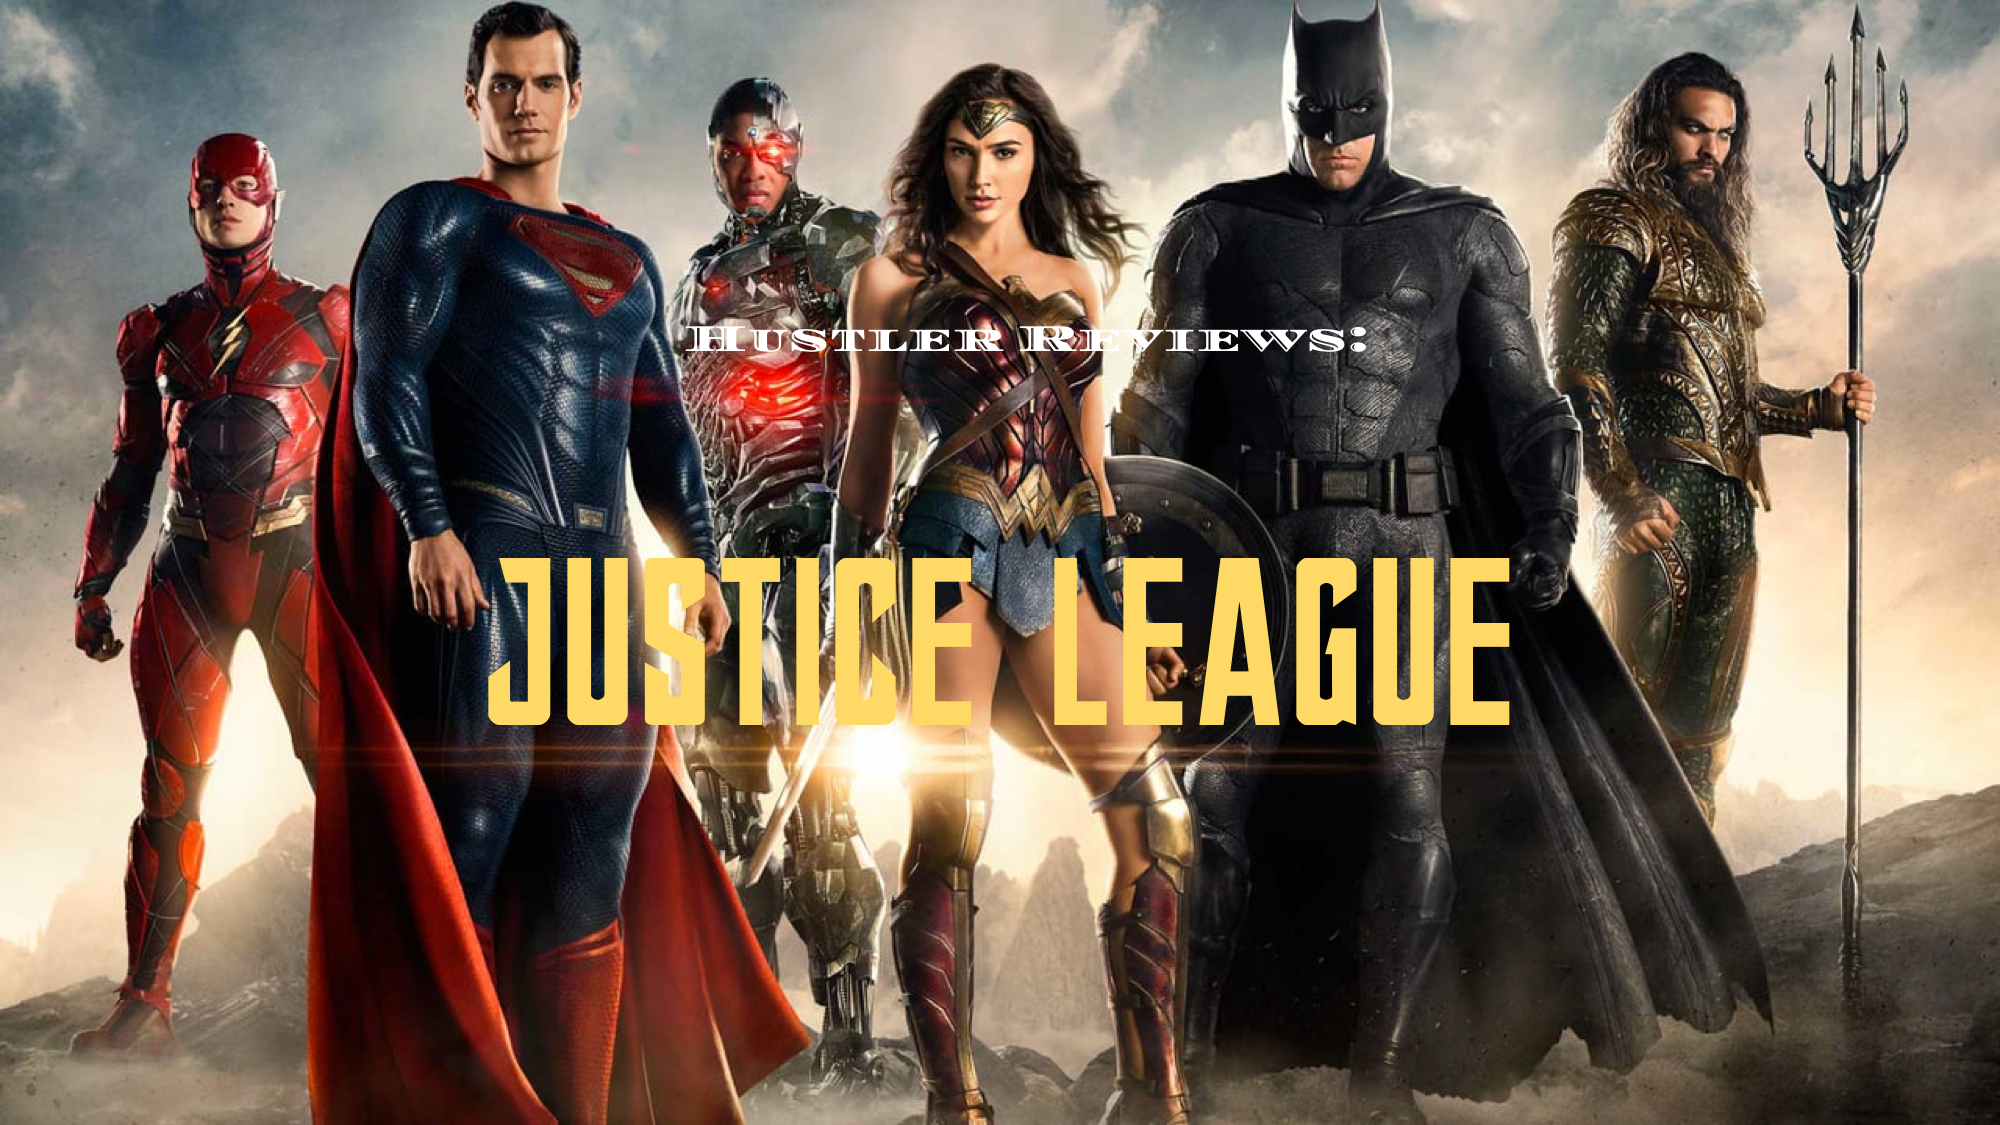 'Justice League' is a brooding, half-baked monster mash